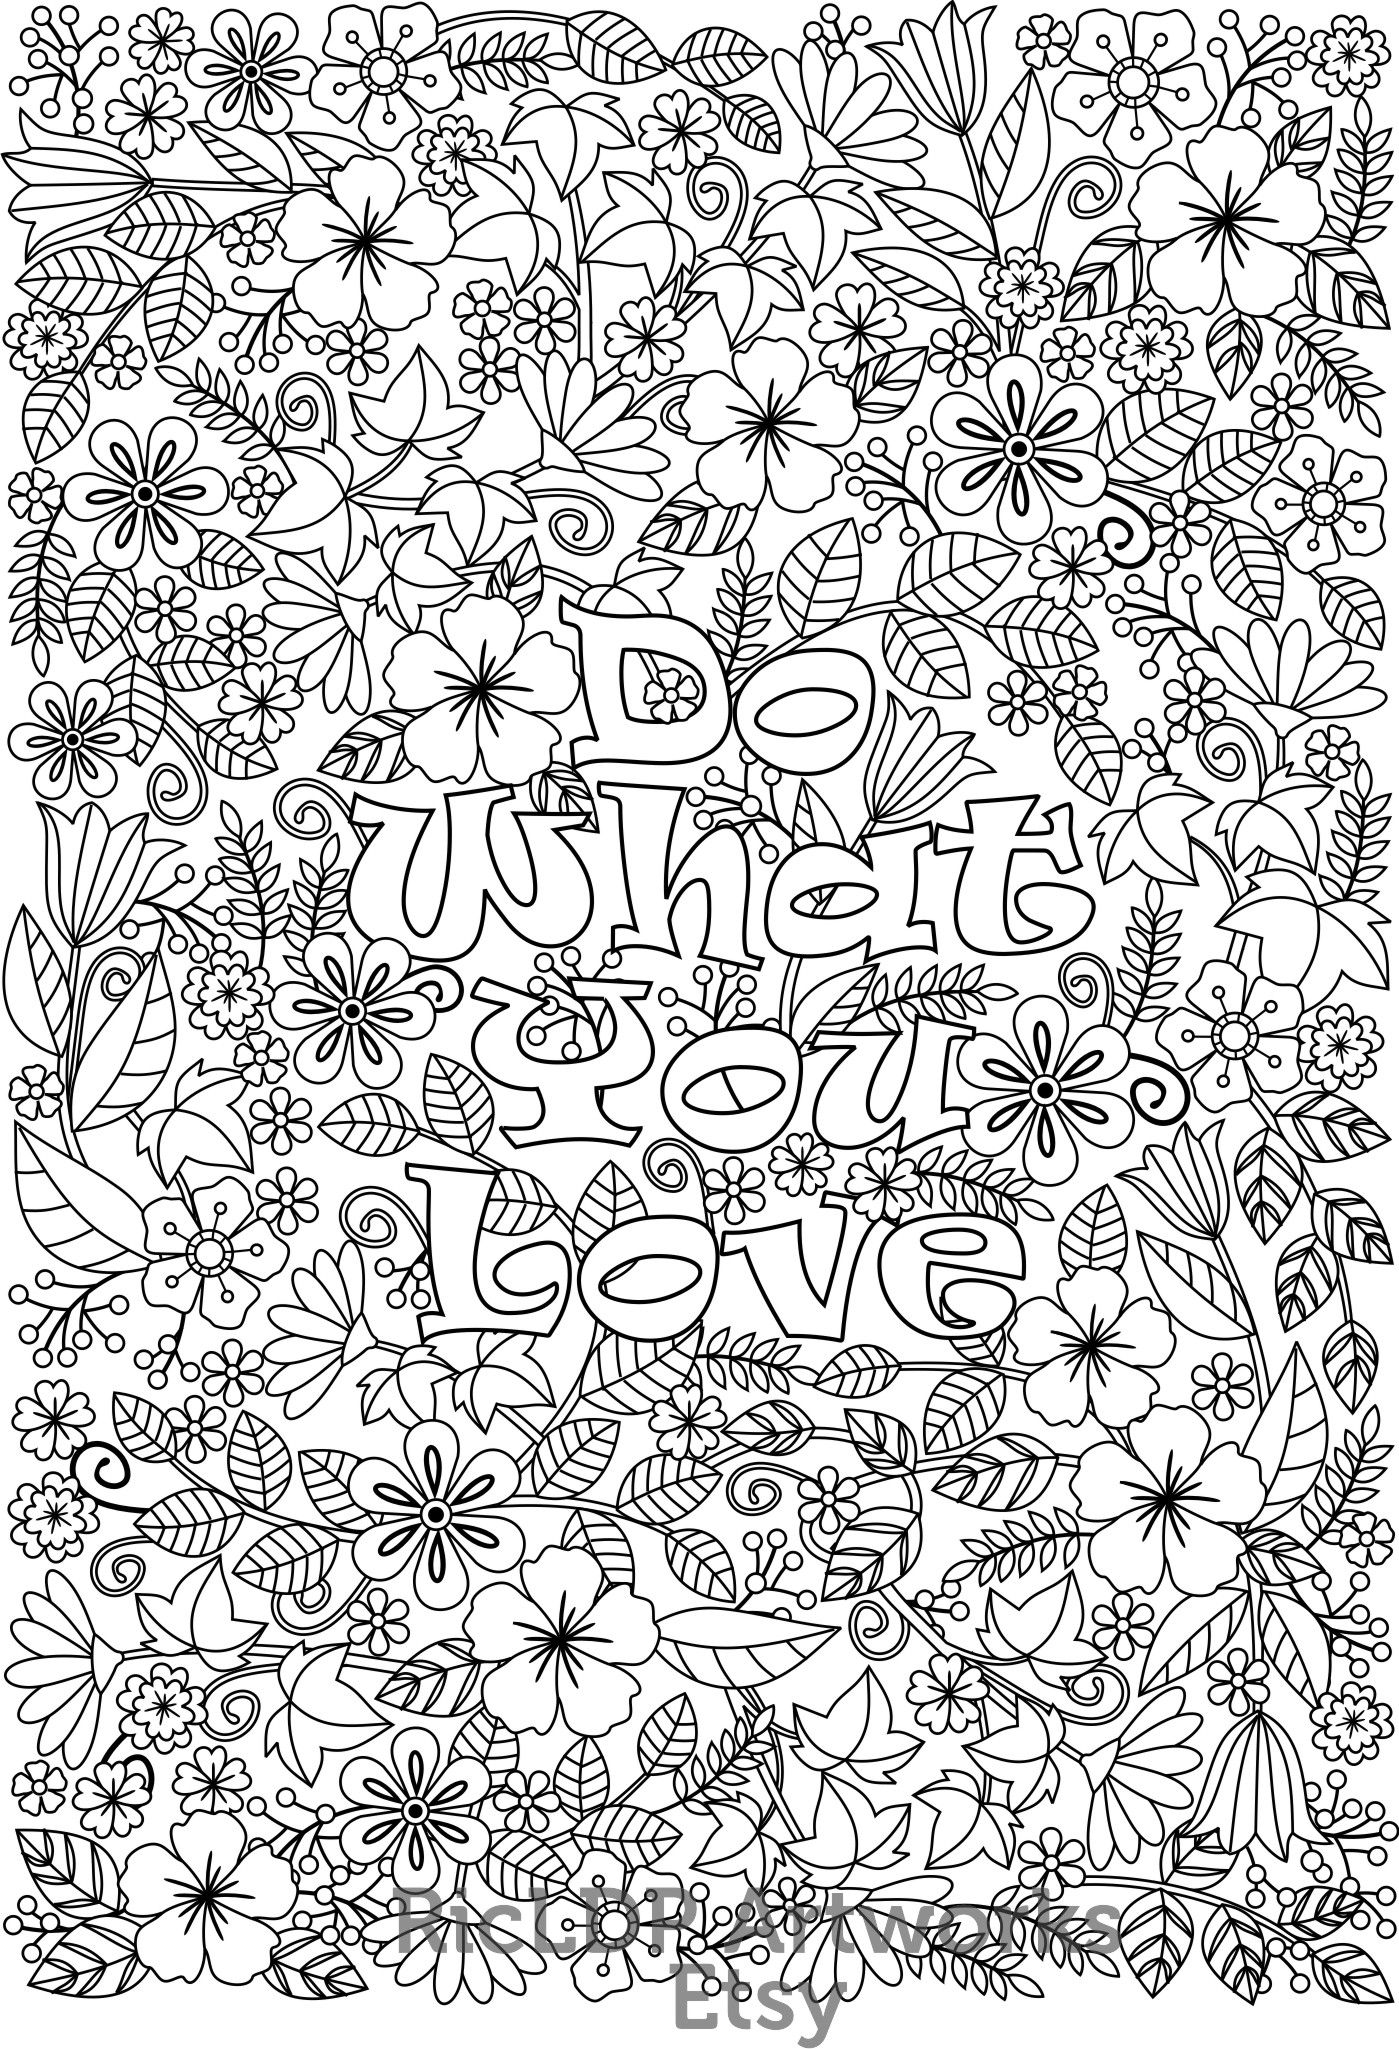 inspirational flower coloring pages - photo#11